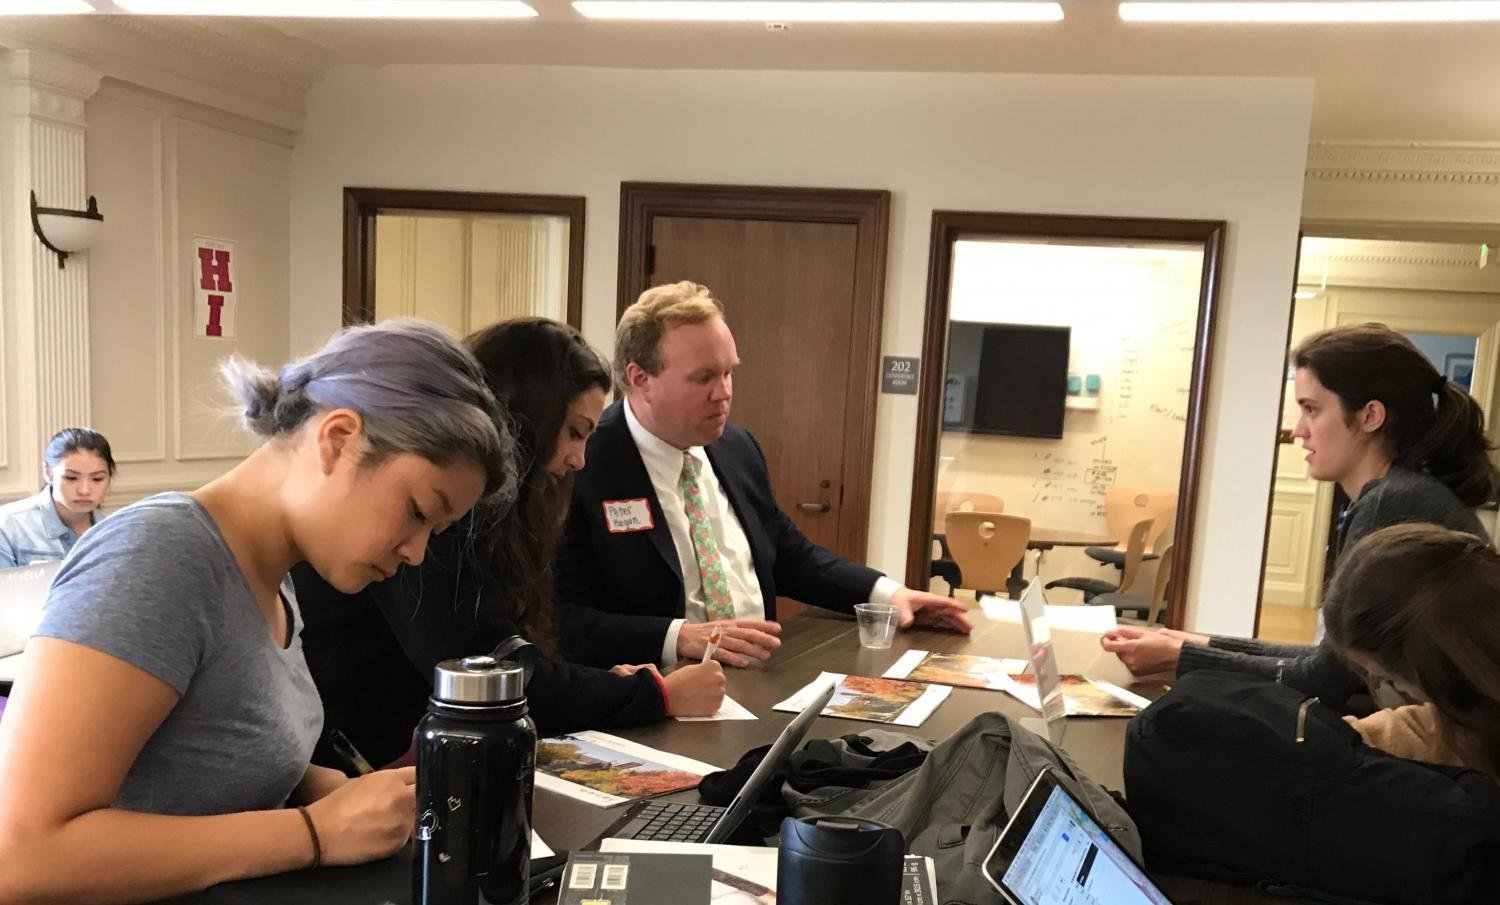 Seniors Marguerite Williamson (right) talks to Syracuse University representative Peter Hagan (center) while Sinead McKeon (right) and juniors Darren Loy and Sofia Pirri (left) fill out papers. Hagan was the first representative to visit this school year.